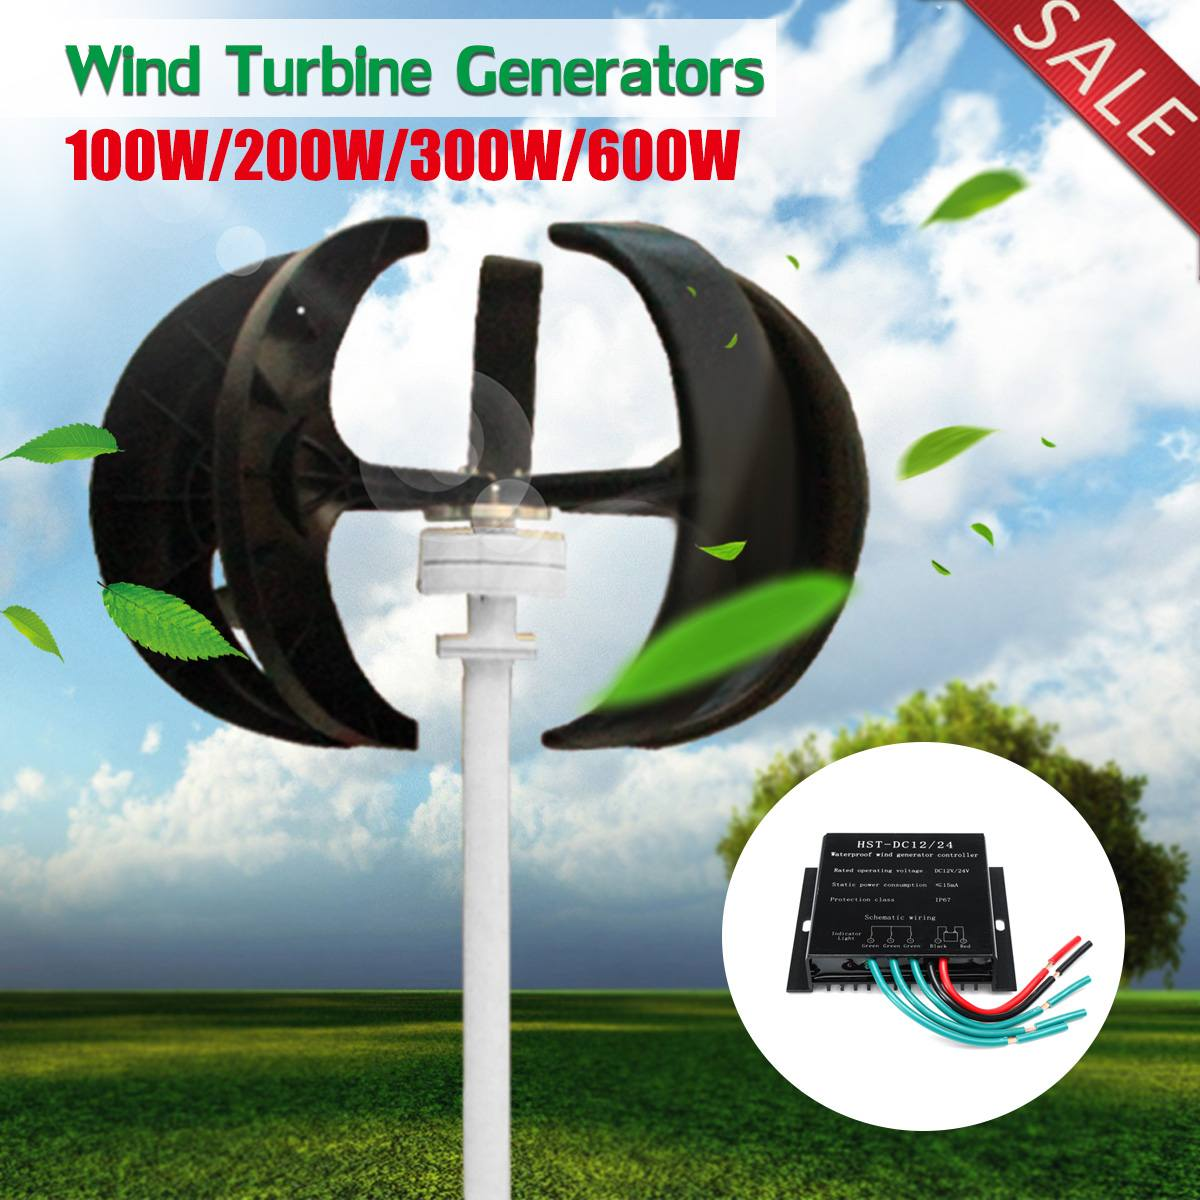 100/200/300/600W 12V/24V Vertical Axis Wind T urbine Generators VAWT House Boat Garden Residential Use with Controller100/200/300/600W 12V/24V Vertical Axis Wind T urbine Generators VAWT House Boat Garden Residential Use with Controller